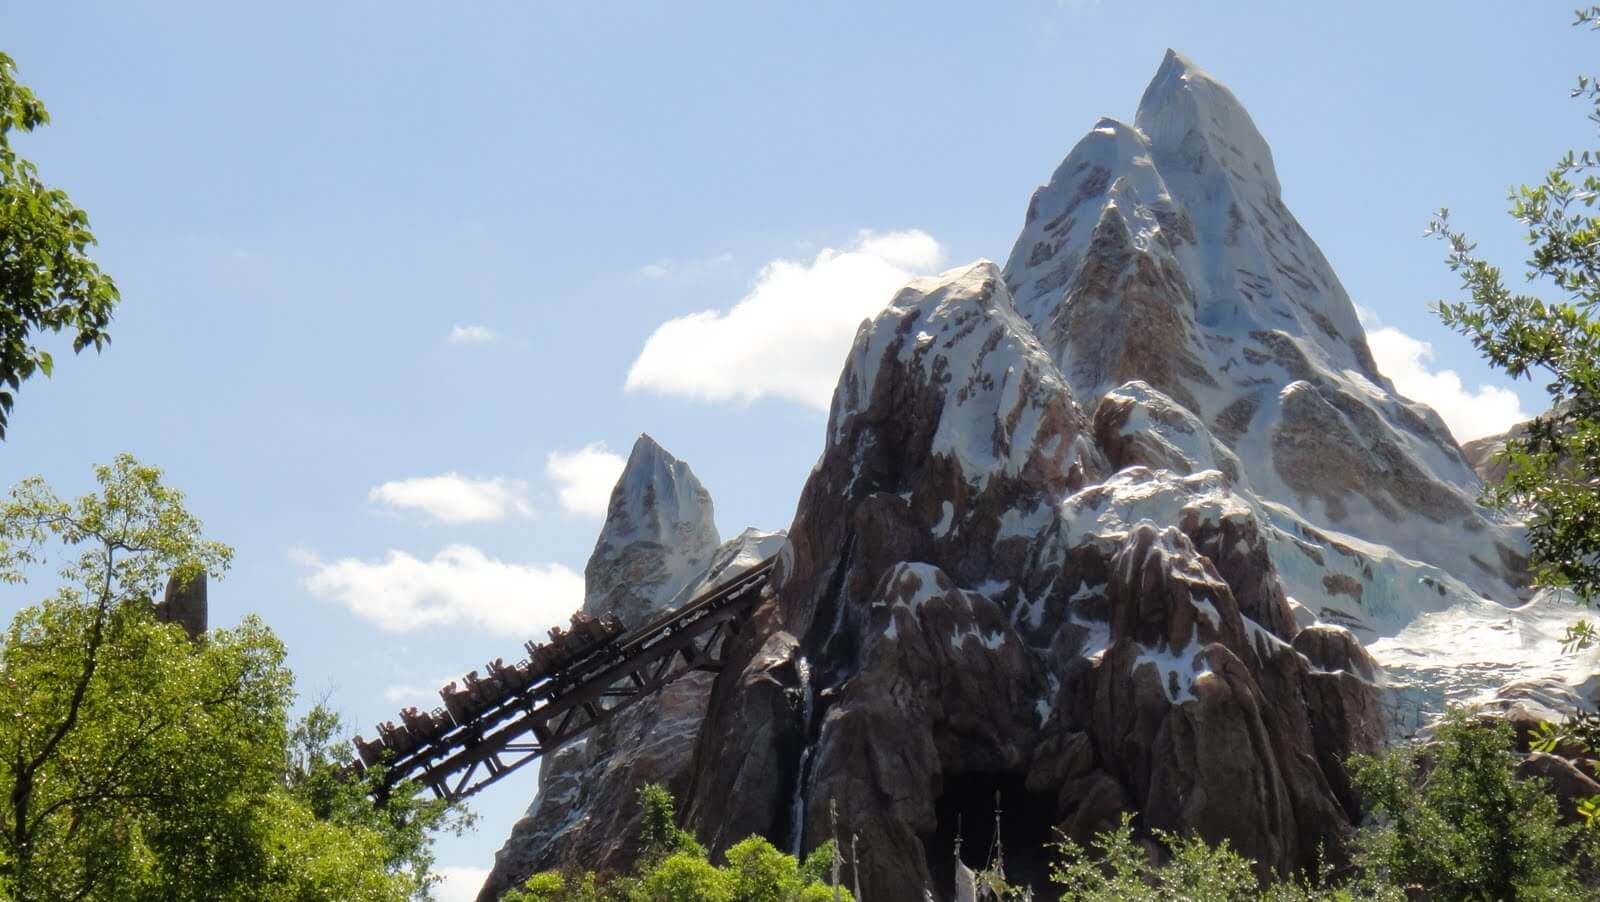 Expedition Everest - Walt Disney World Resort